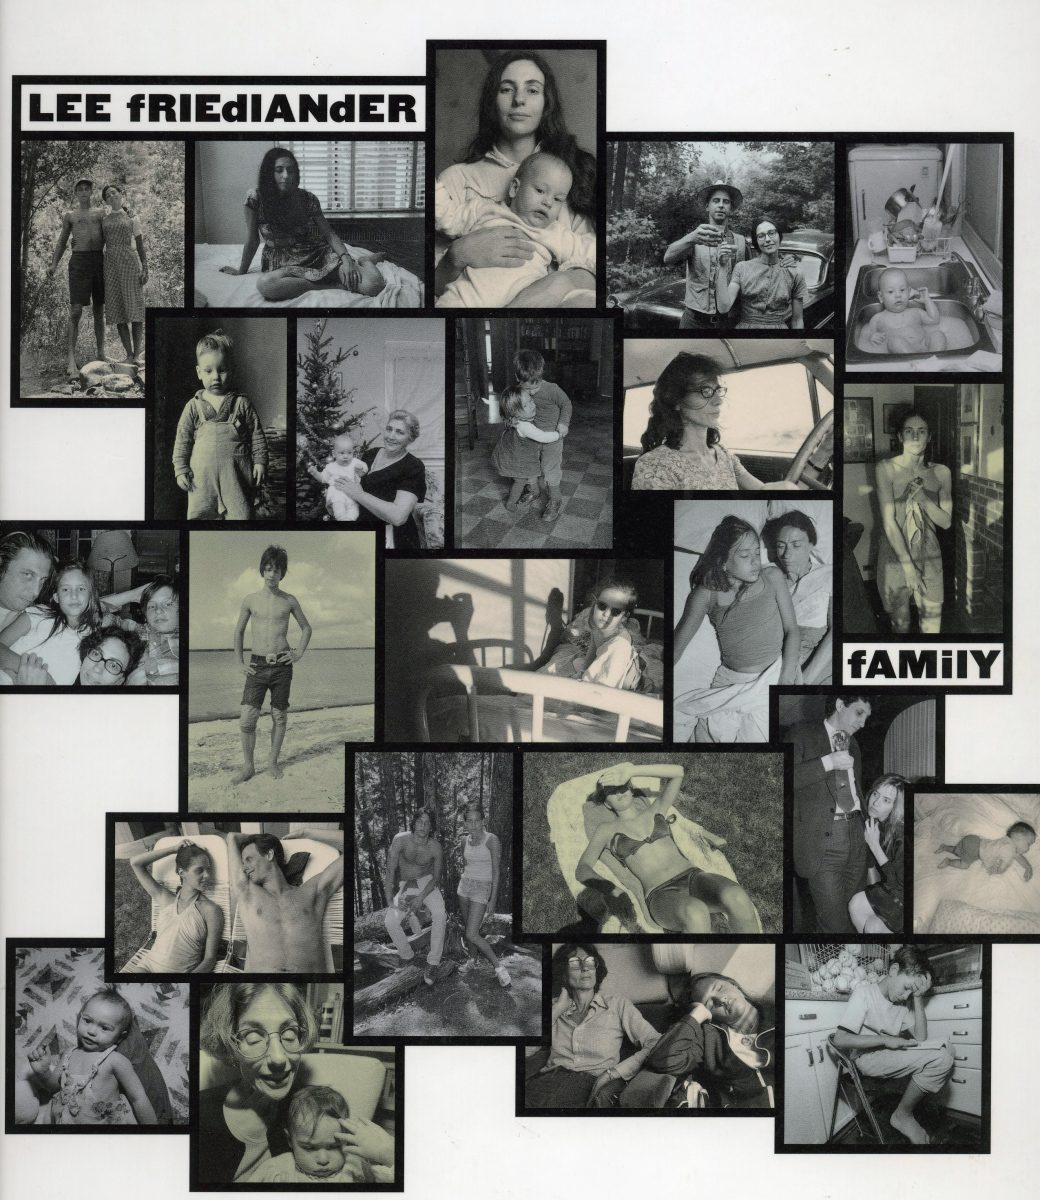 Family : Lee Friedlander